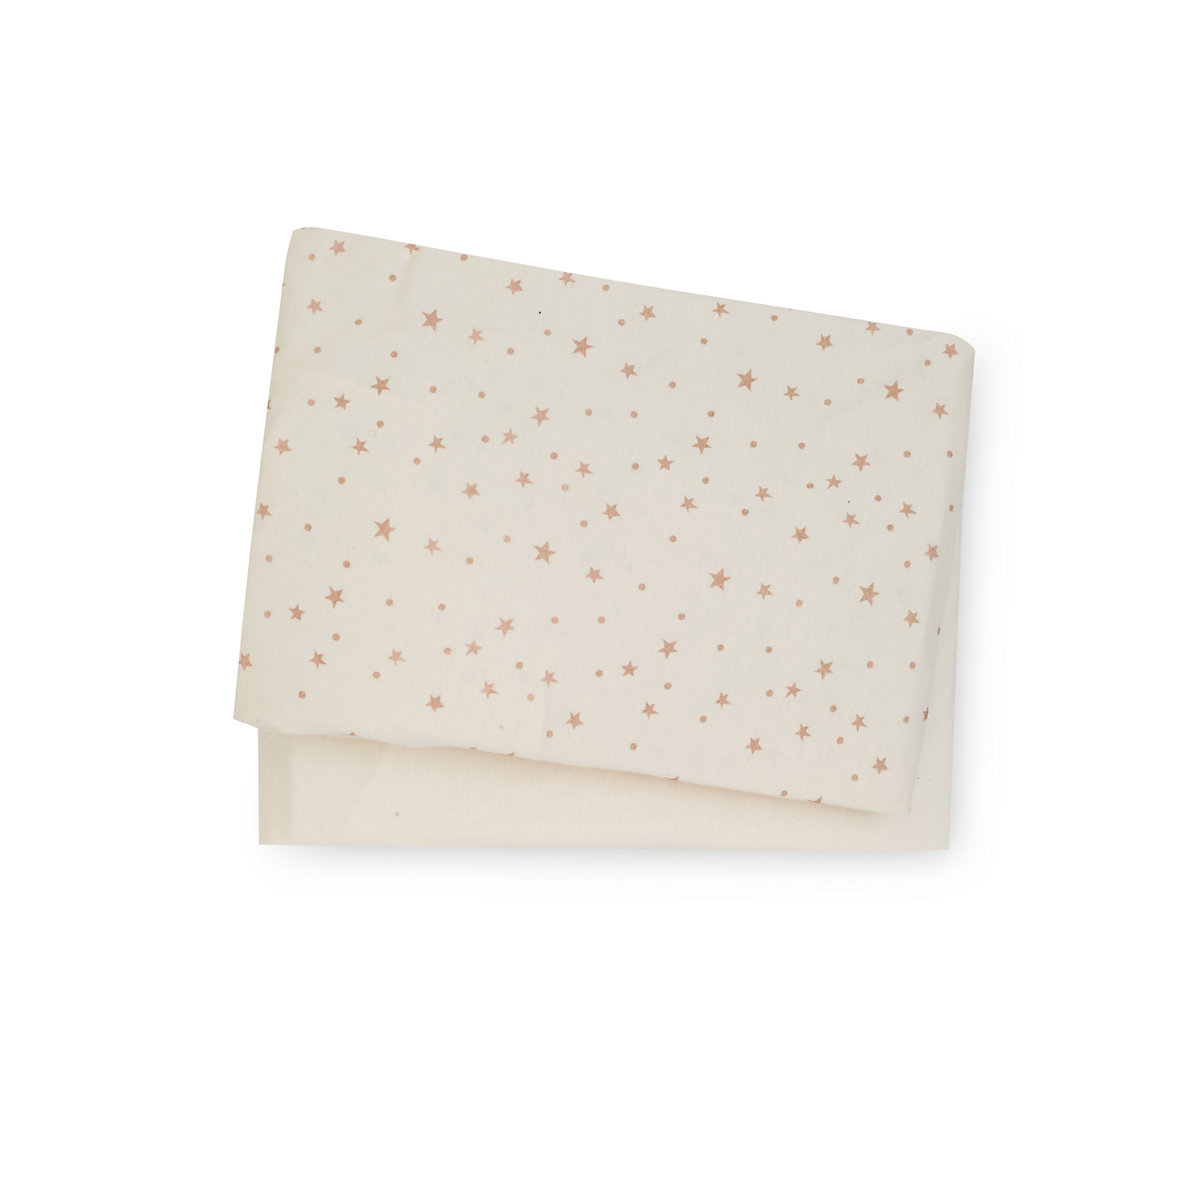 Mothercare Baby Bedding Cream Jersey Cotton Cot Sheets - 2